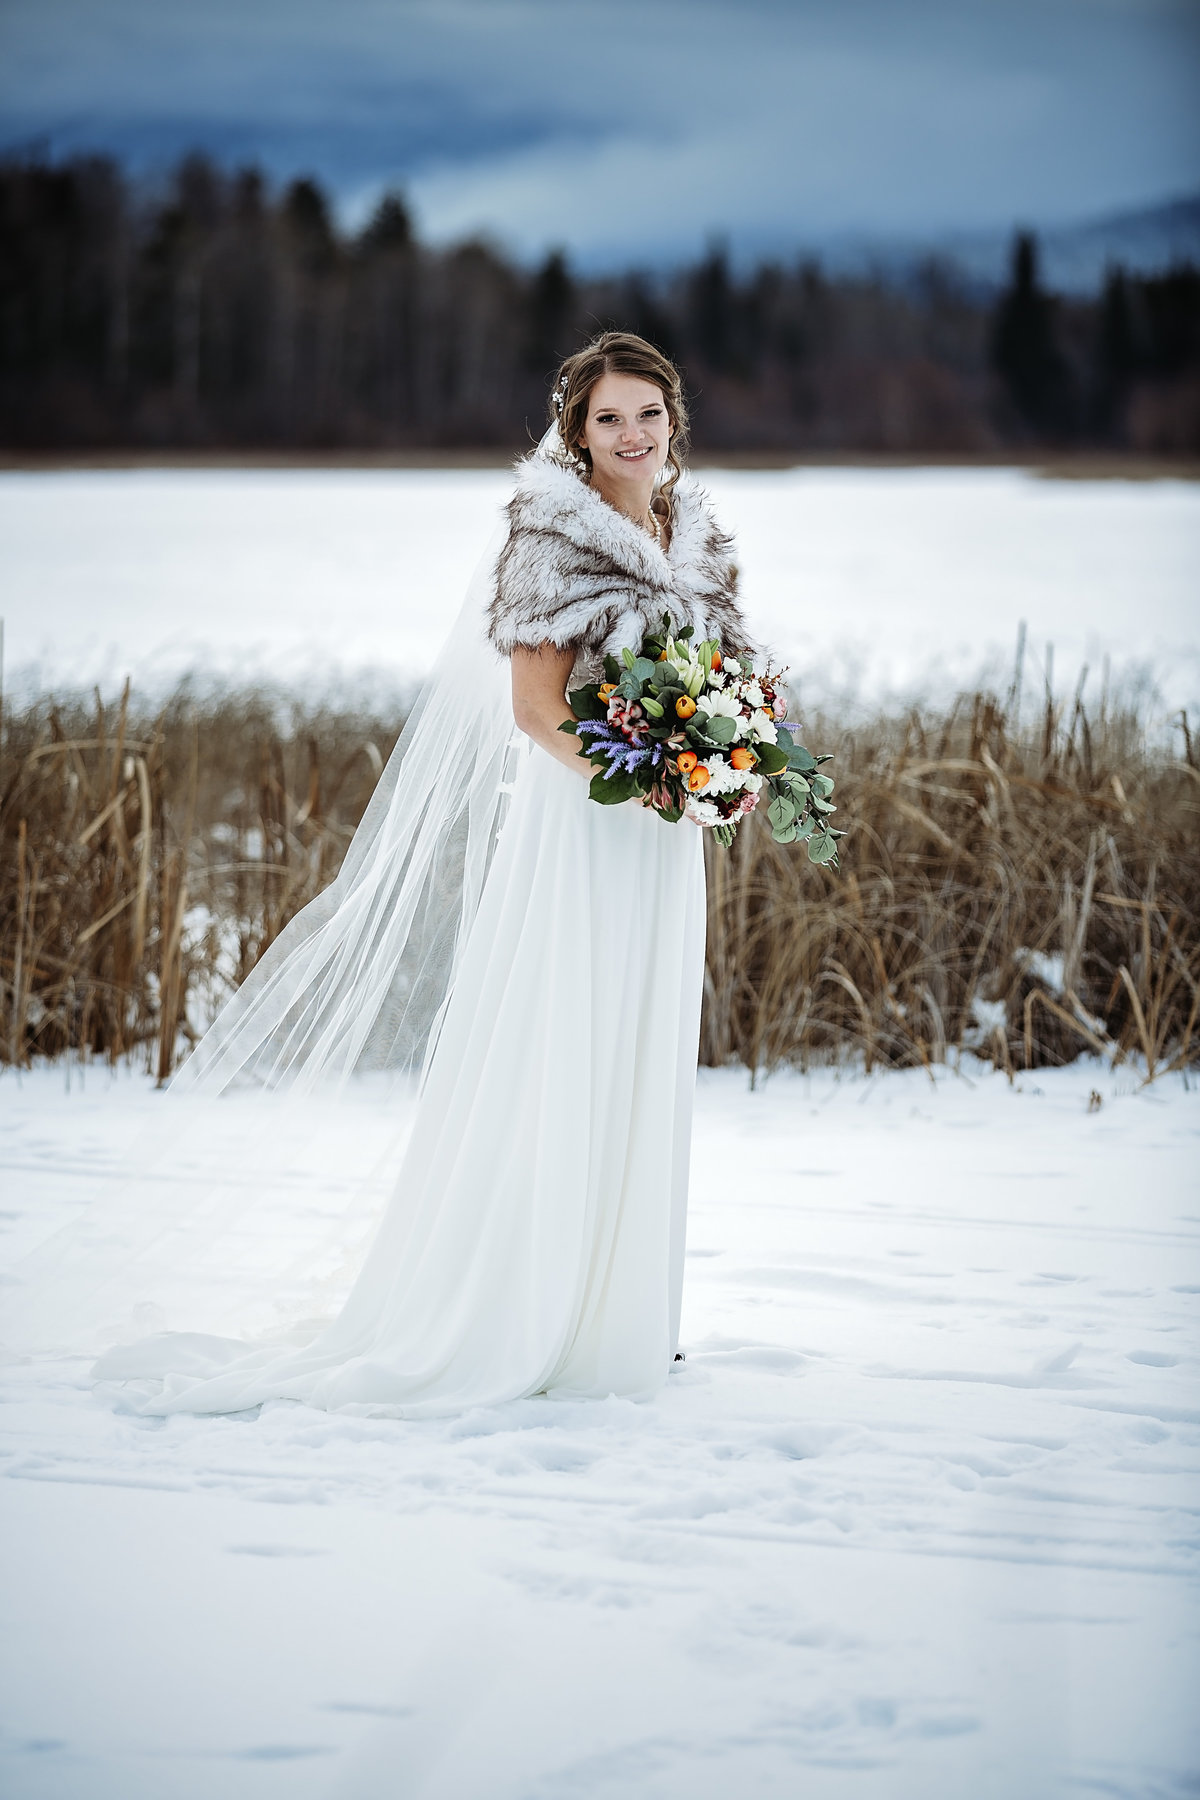 Bride in Winter wedding photography on Marsh in Valemount BC